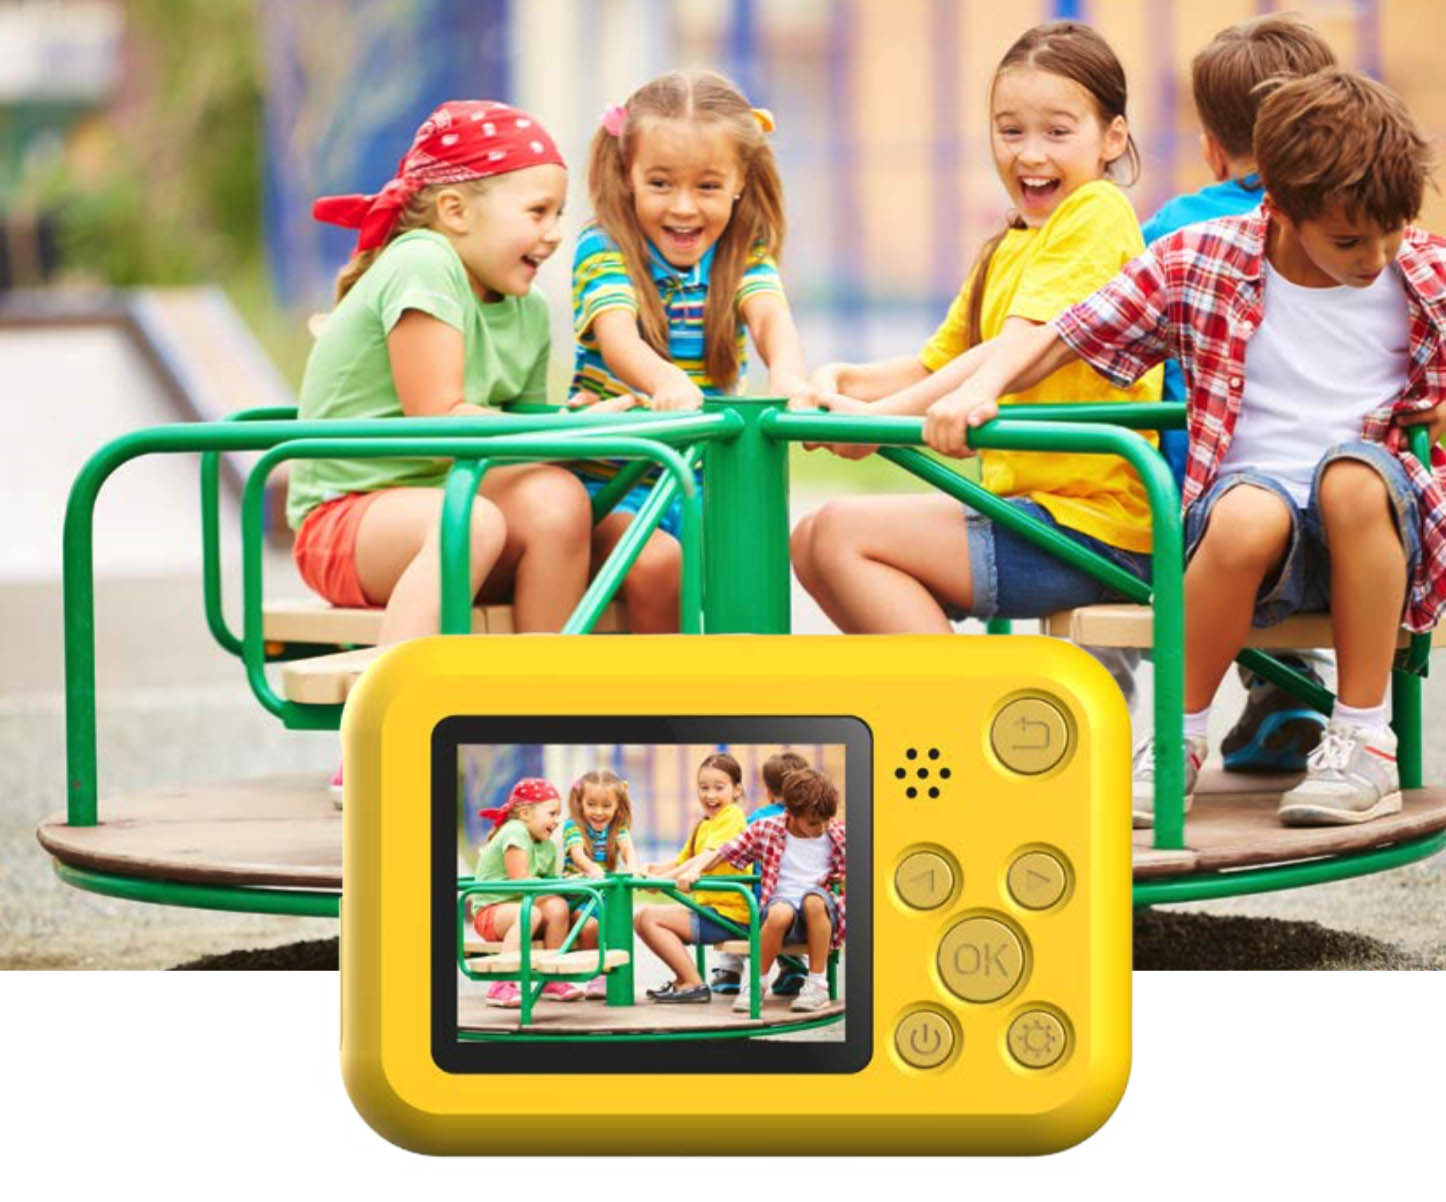 SJCAM FunCam Kids HD Digital Action Camera for Children